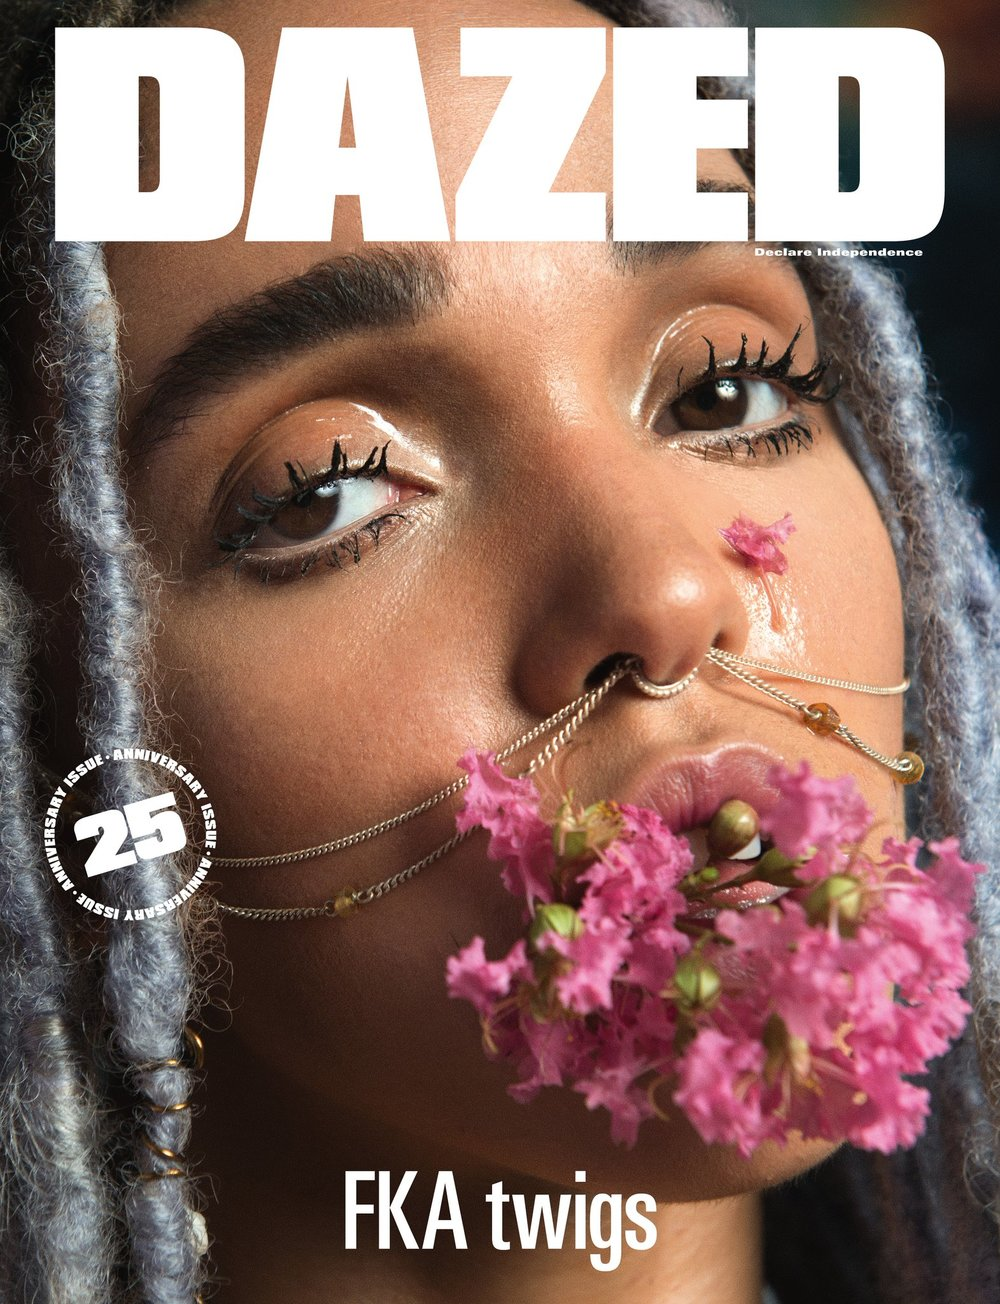 "<a href=""http://www.dazeddigital.com/artsandculture/article/32982/1/the-25th-anniversary-issue"" Target=""_Blank"">DAZED & CONFUSED</a>"